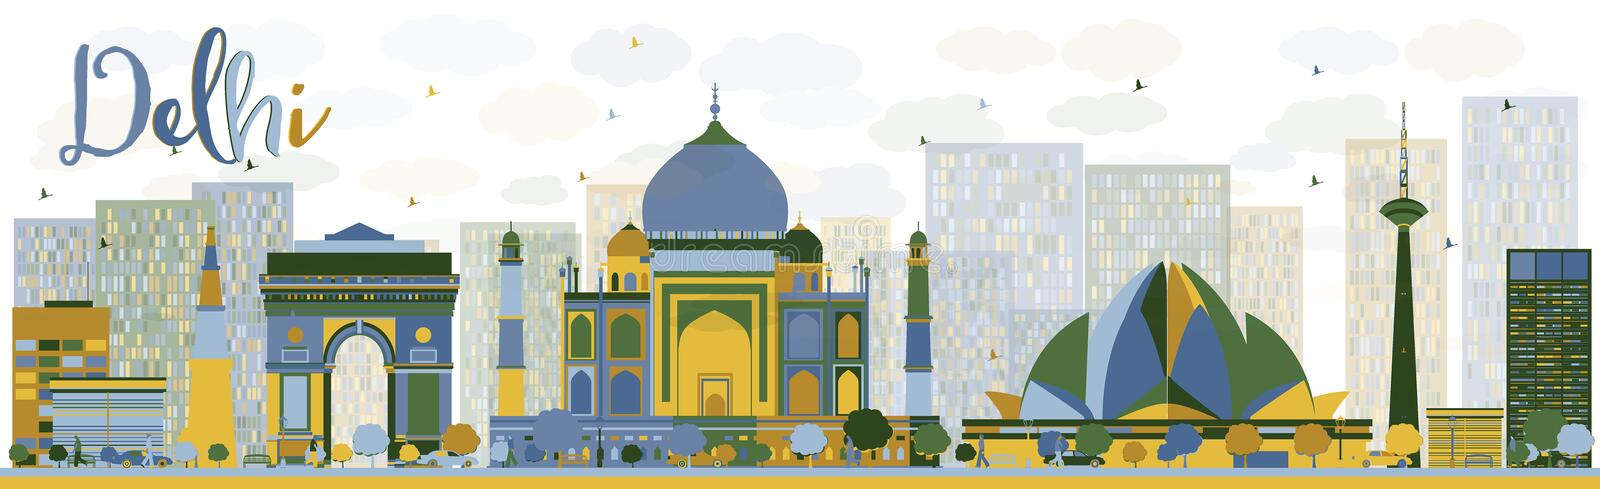 Abstract Delhi skyline with color landmarks. Vector illustration. Business travel and tourism concept with historic buildings. Image for presentation, banner royalty free illustration